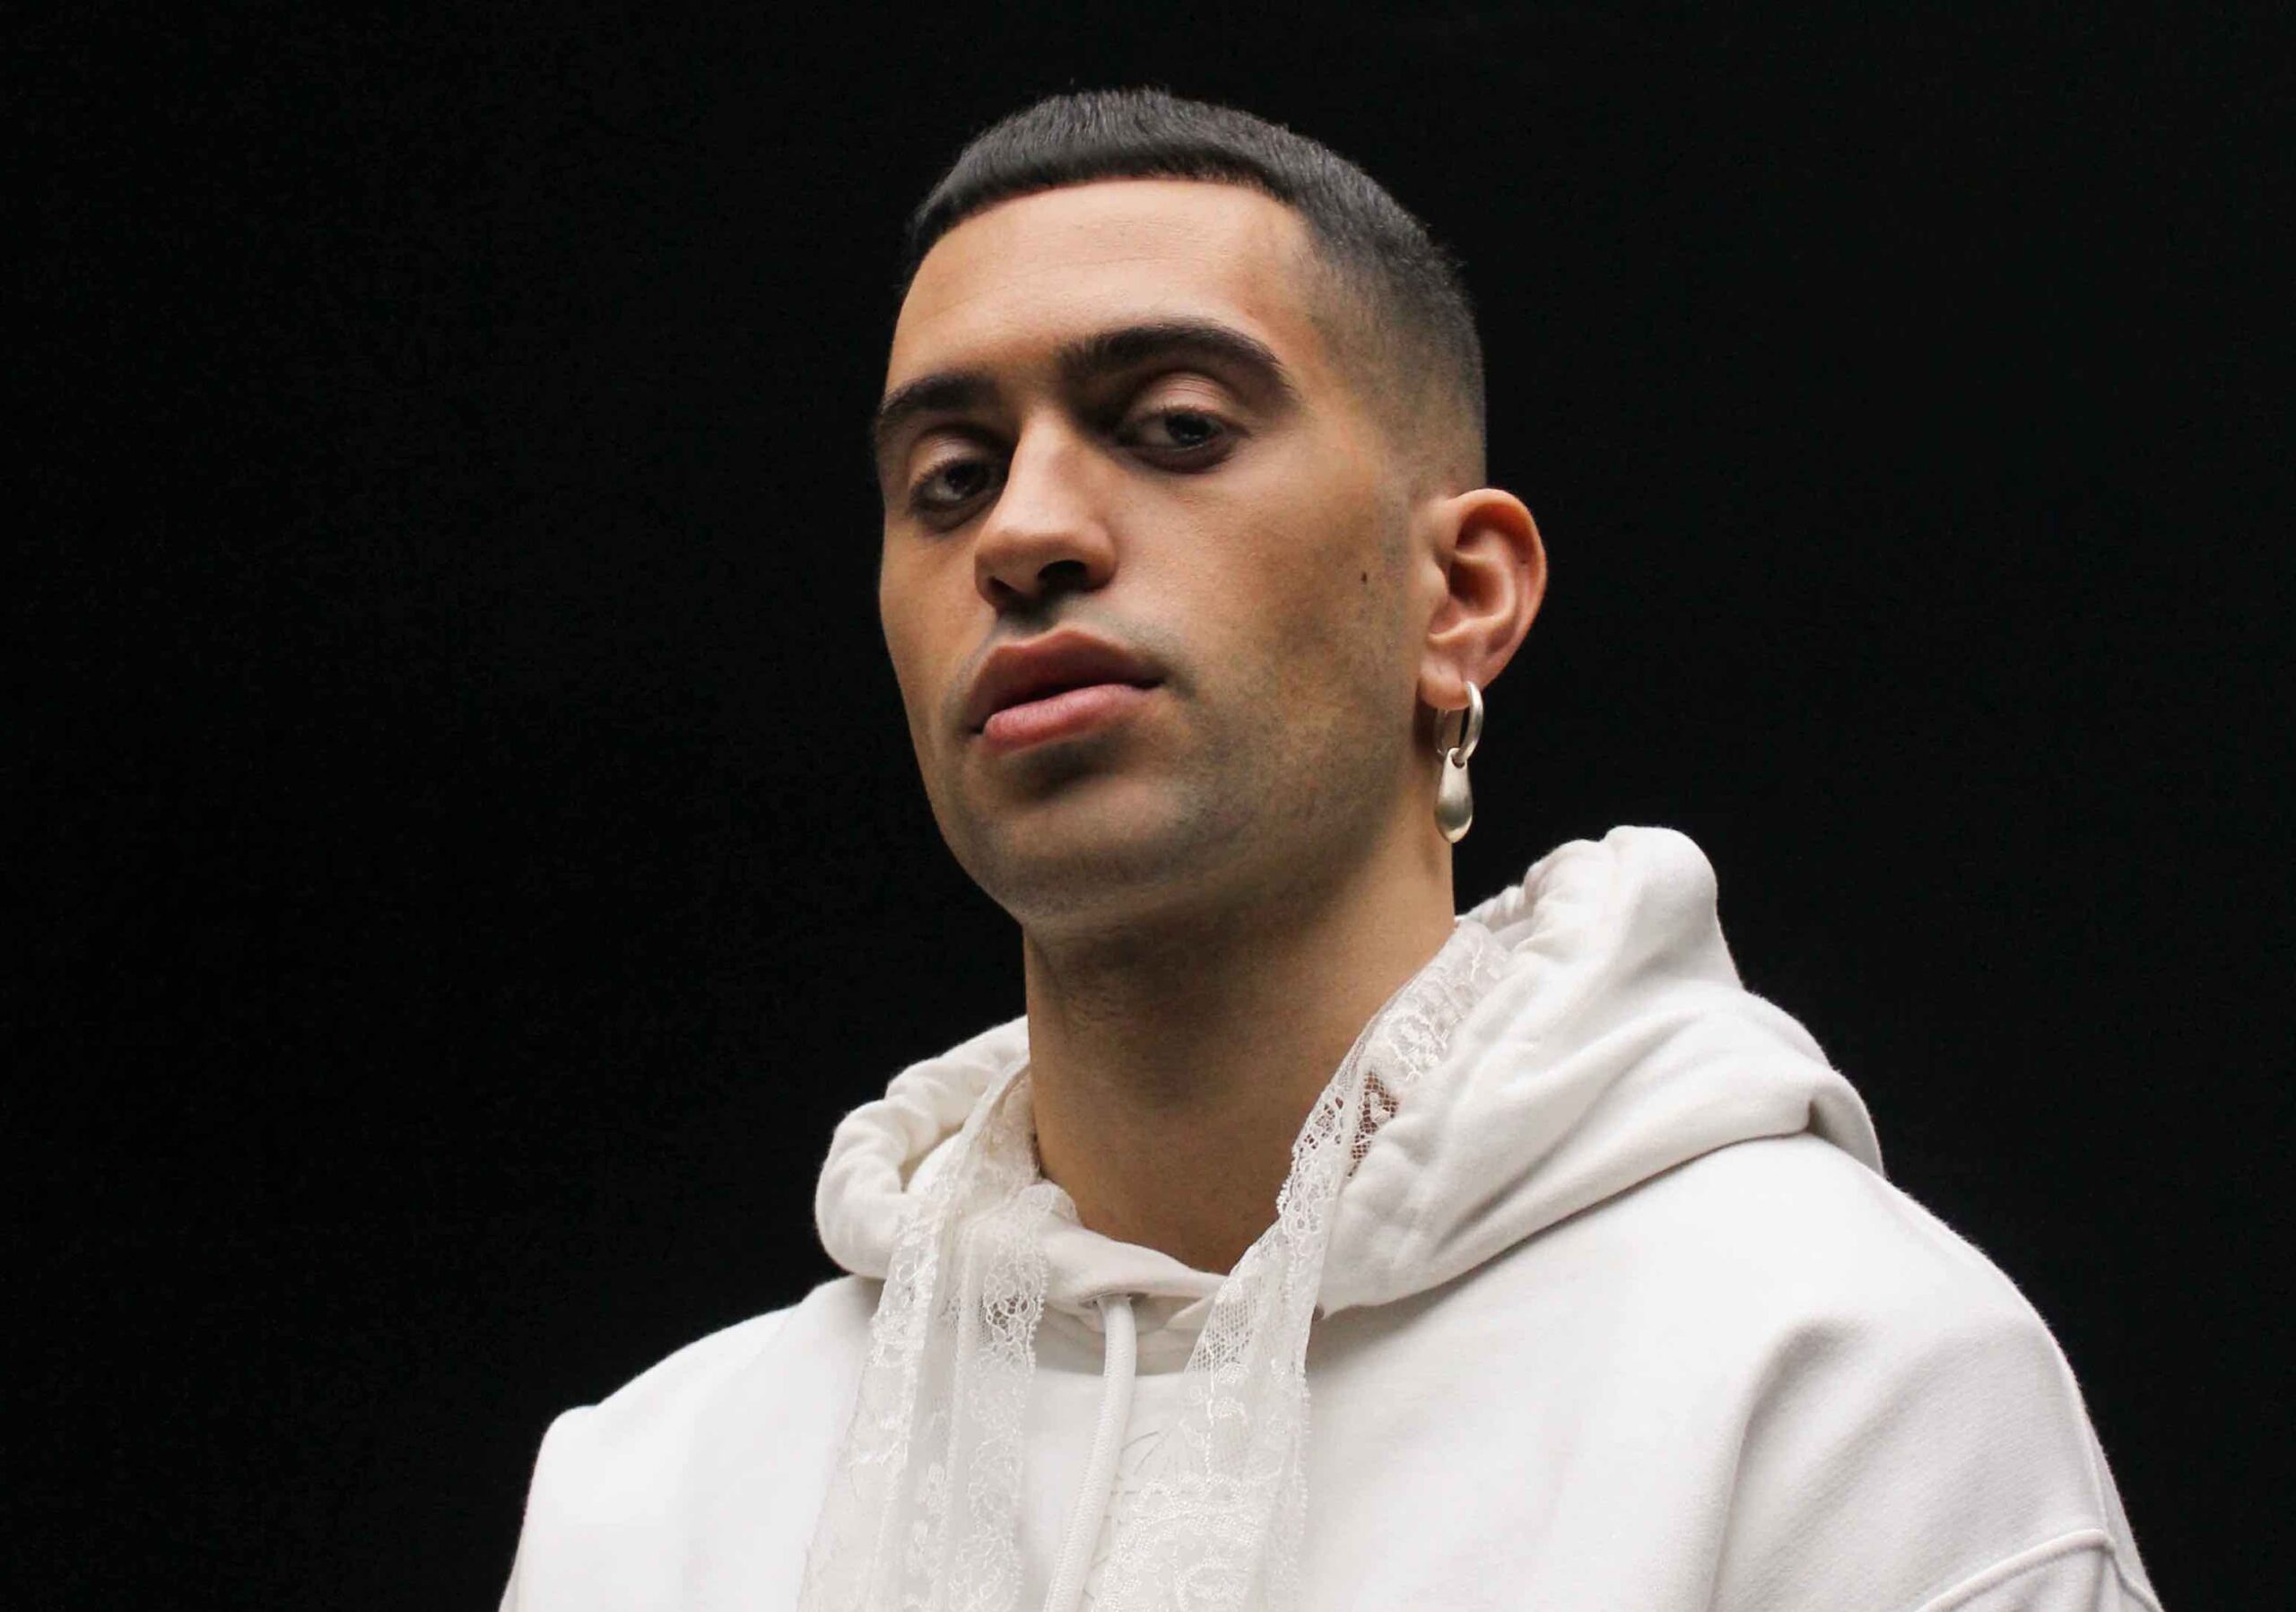 Mahmood, il tour slitta al 2021